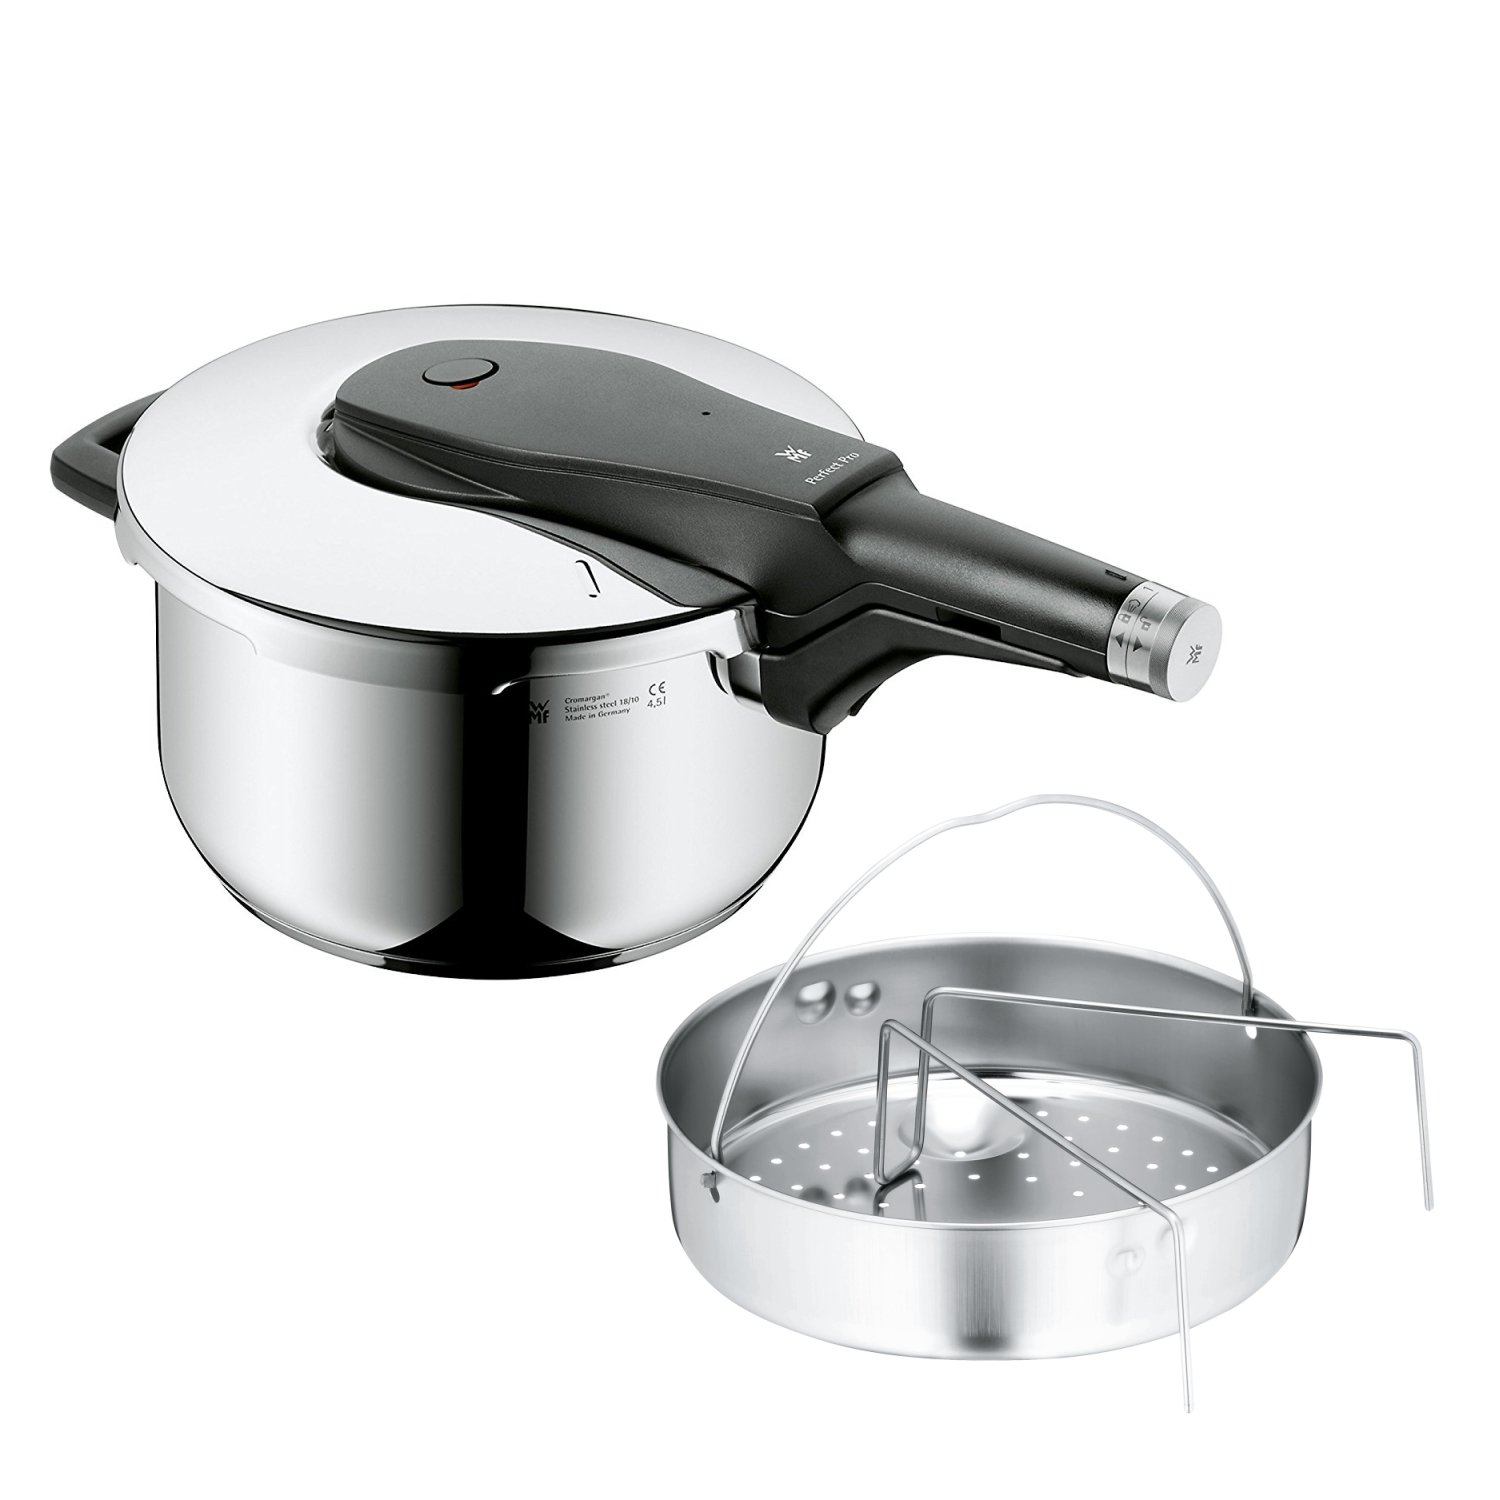 WMF Perfect Pro Pressure cooker 4,5l with insert Ø 22cm Made in Germany internal scaling Cromargan stainless steel suitable for induction 0796226040 07.9622.6040